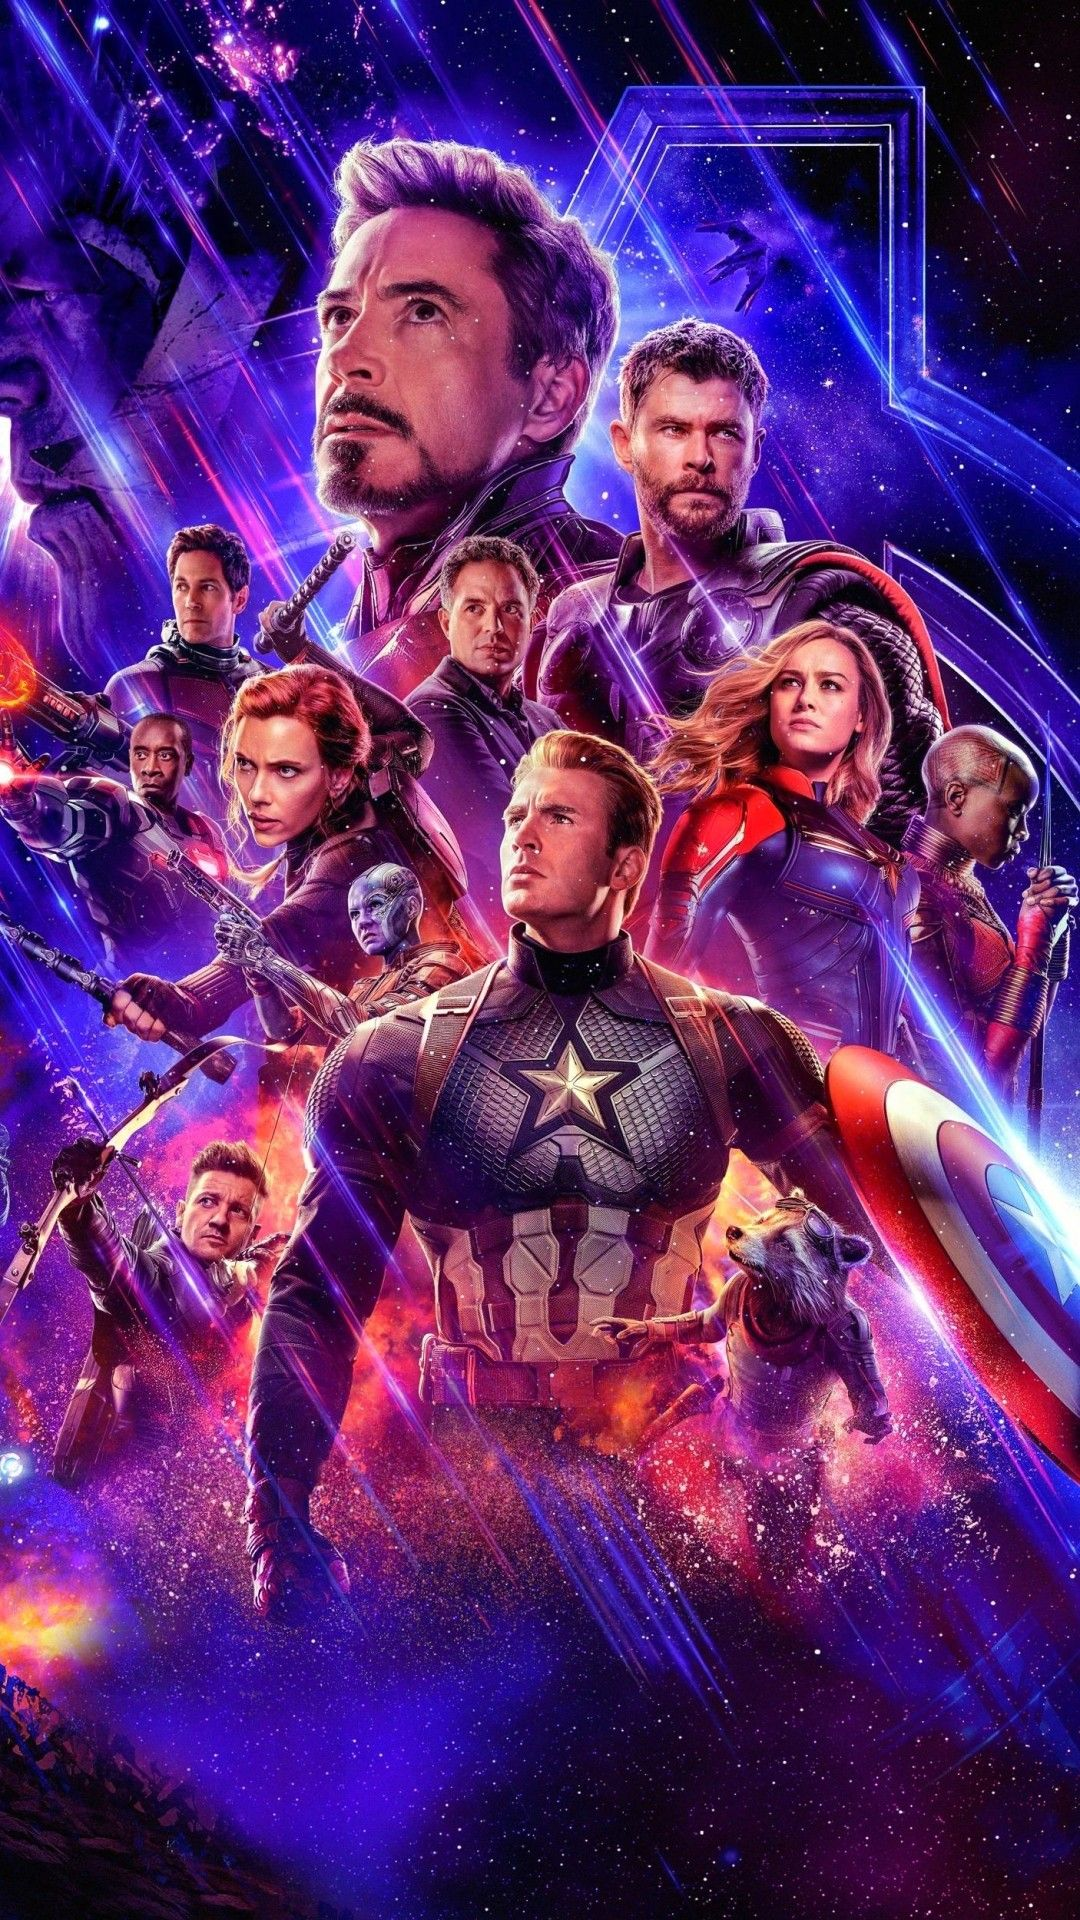 Wallpaper Phone Avengers Endgame Full Hd Vingadores